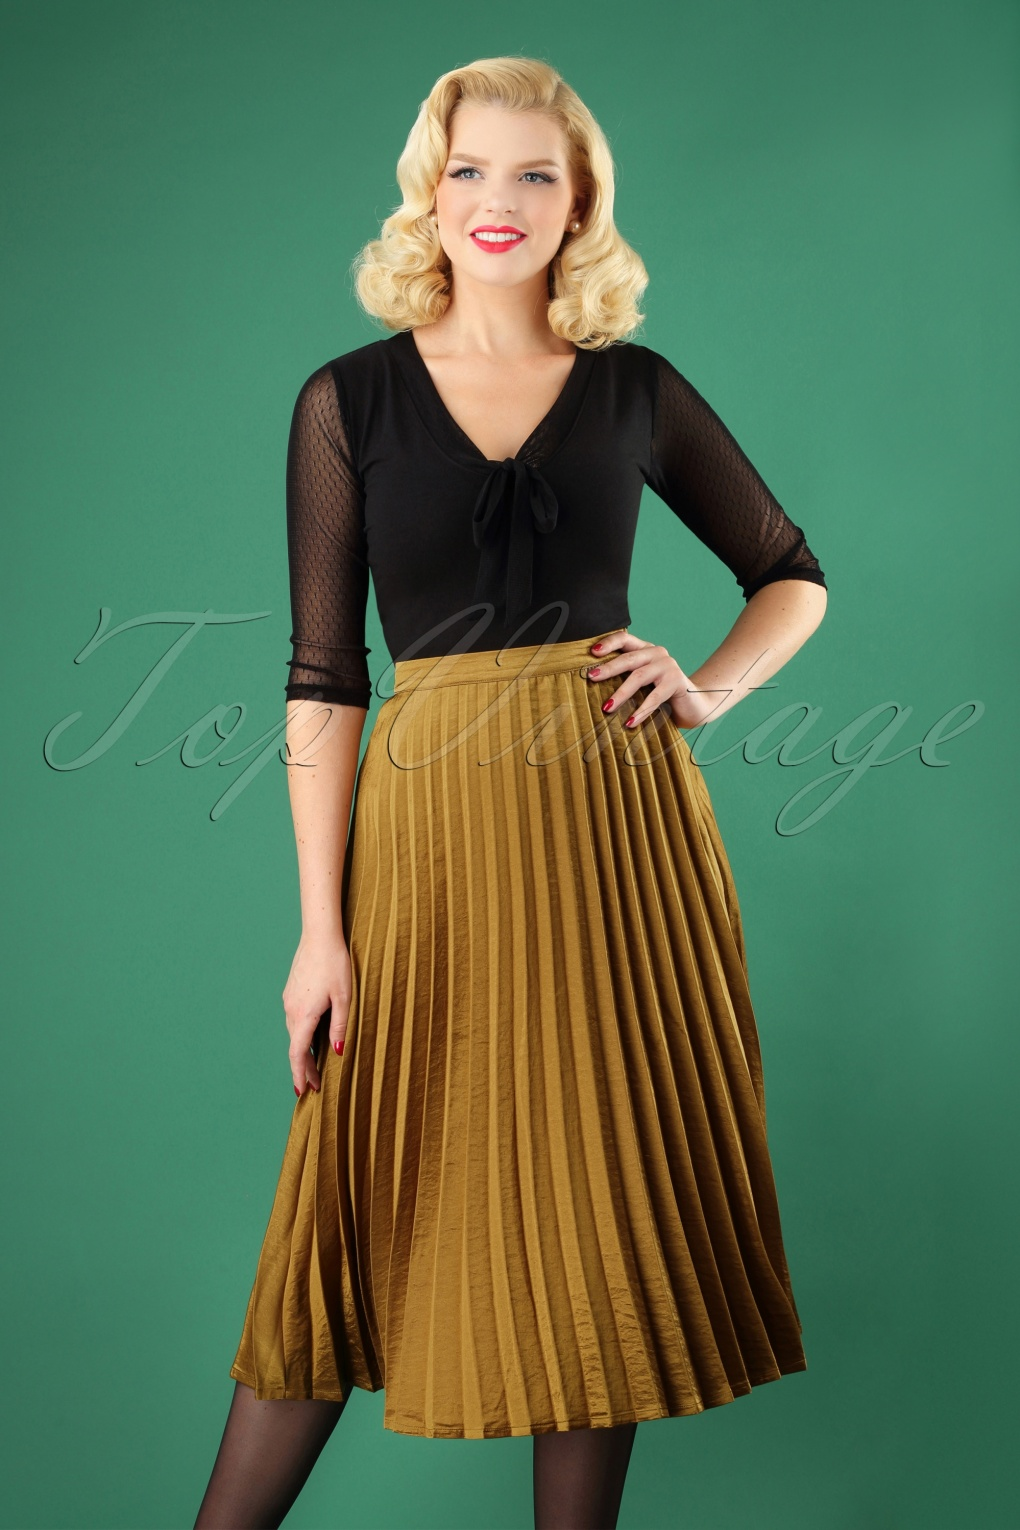 1930s Style Skirts : Midi Skirts, Tea Length, Pleated 50s Carole Pleated Skirt in Gold £75.68 AT vintagedancer.com